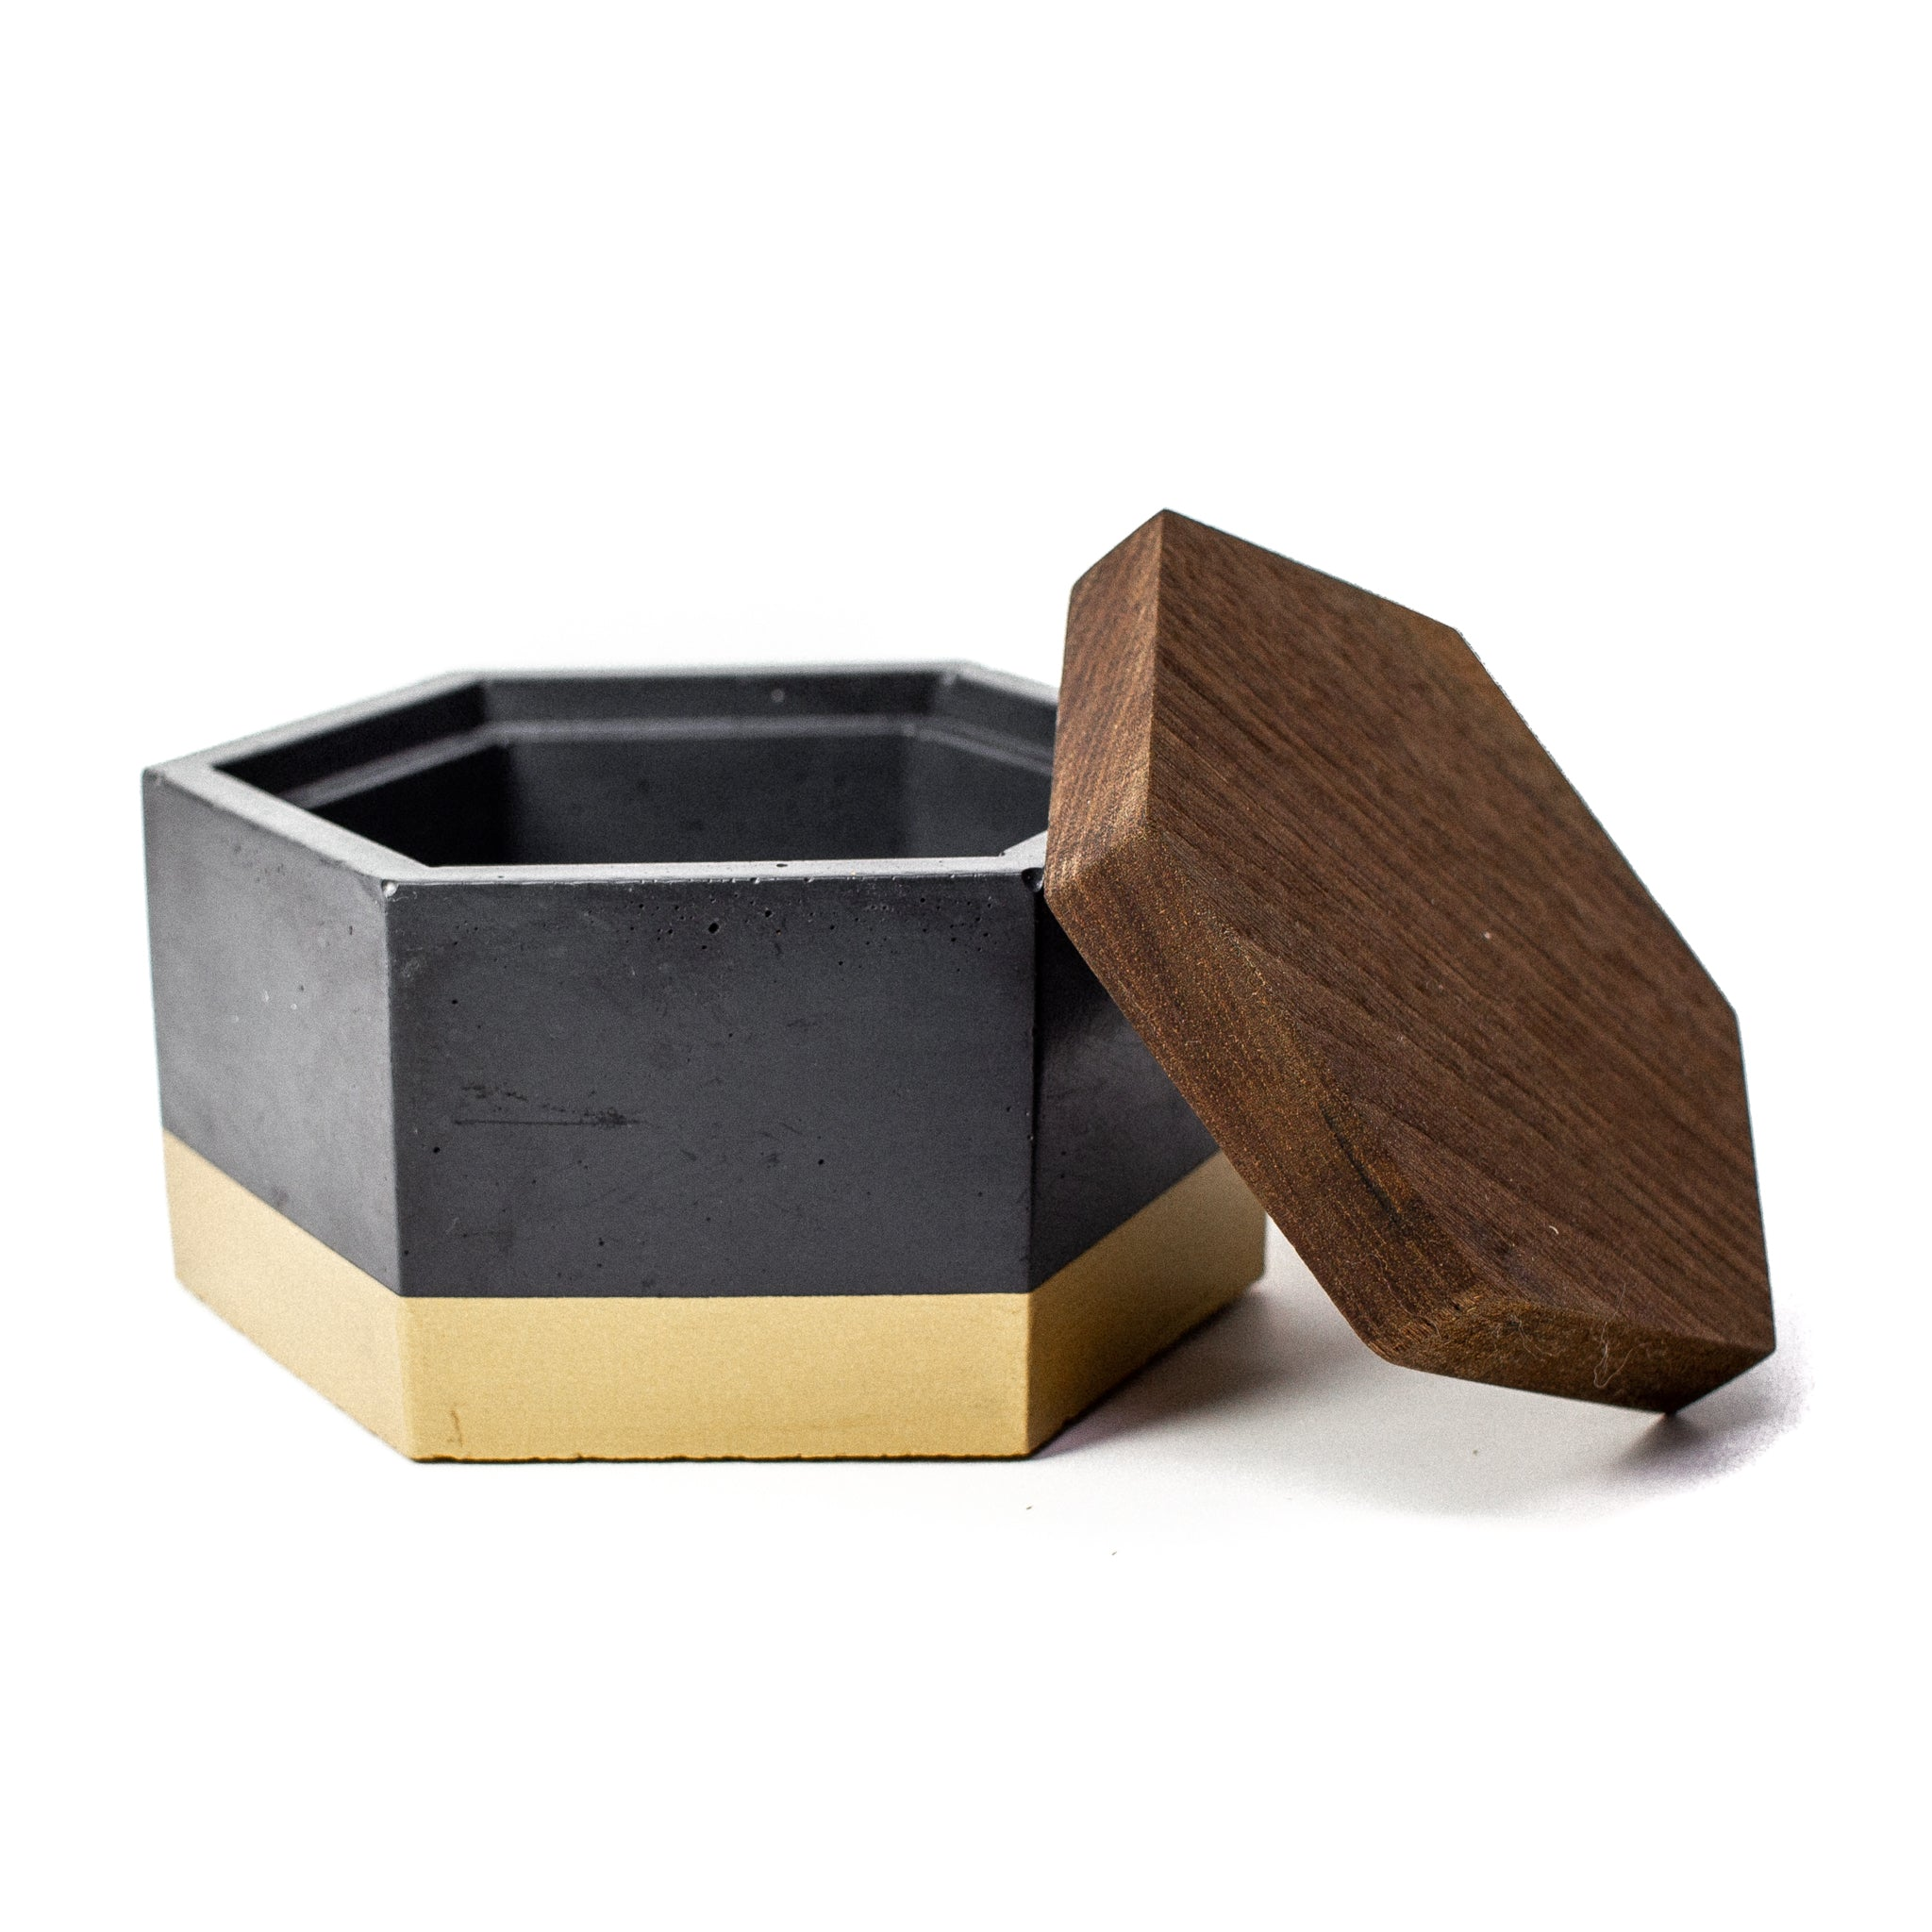 Concrete Hexagon Box (Black & Gold) with Wooden Lid